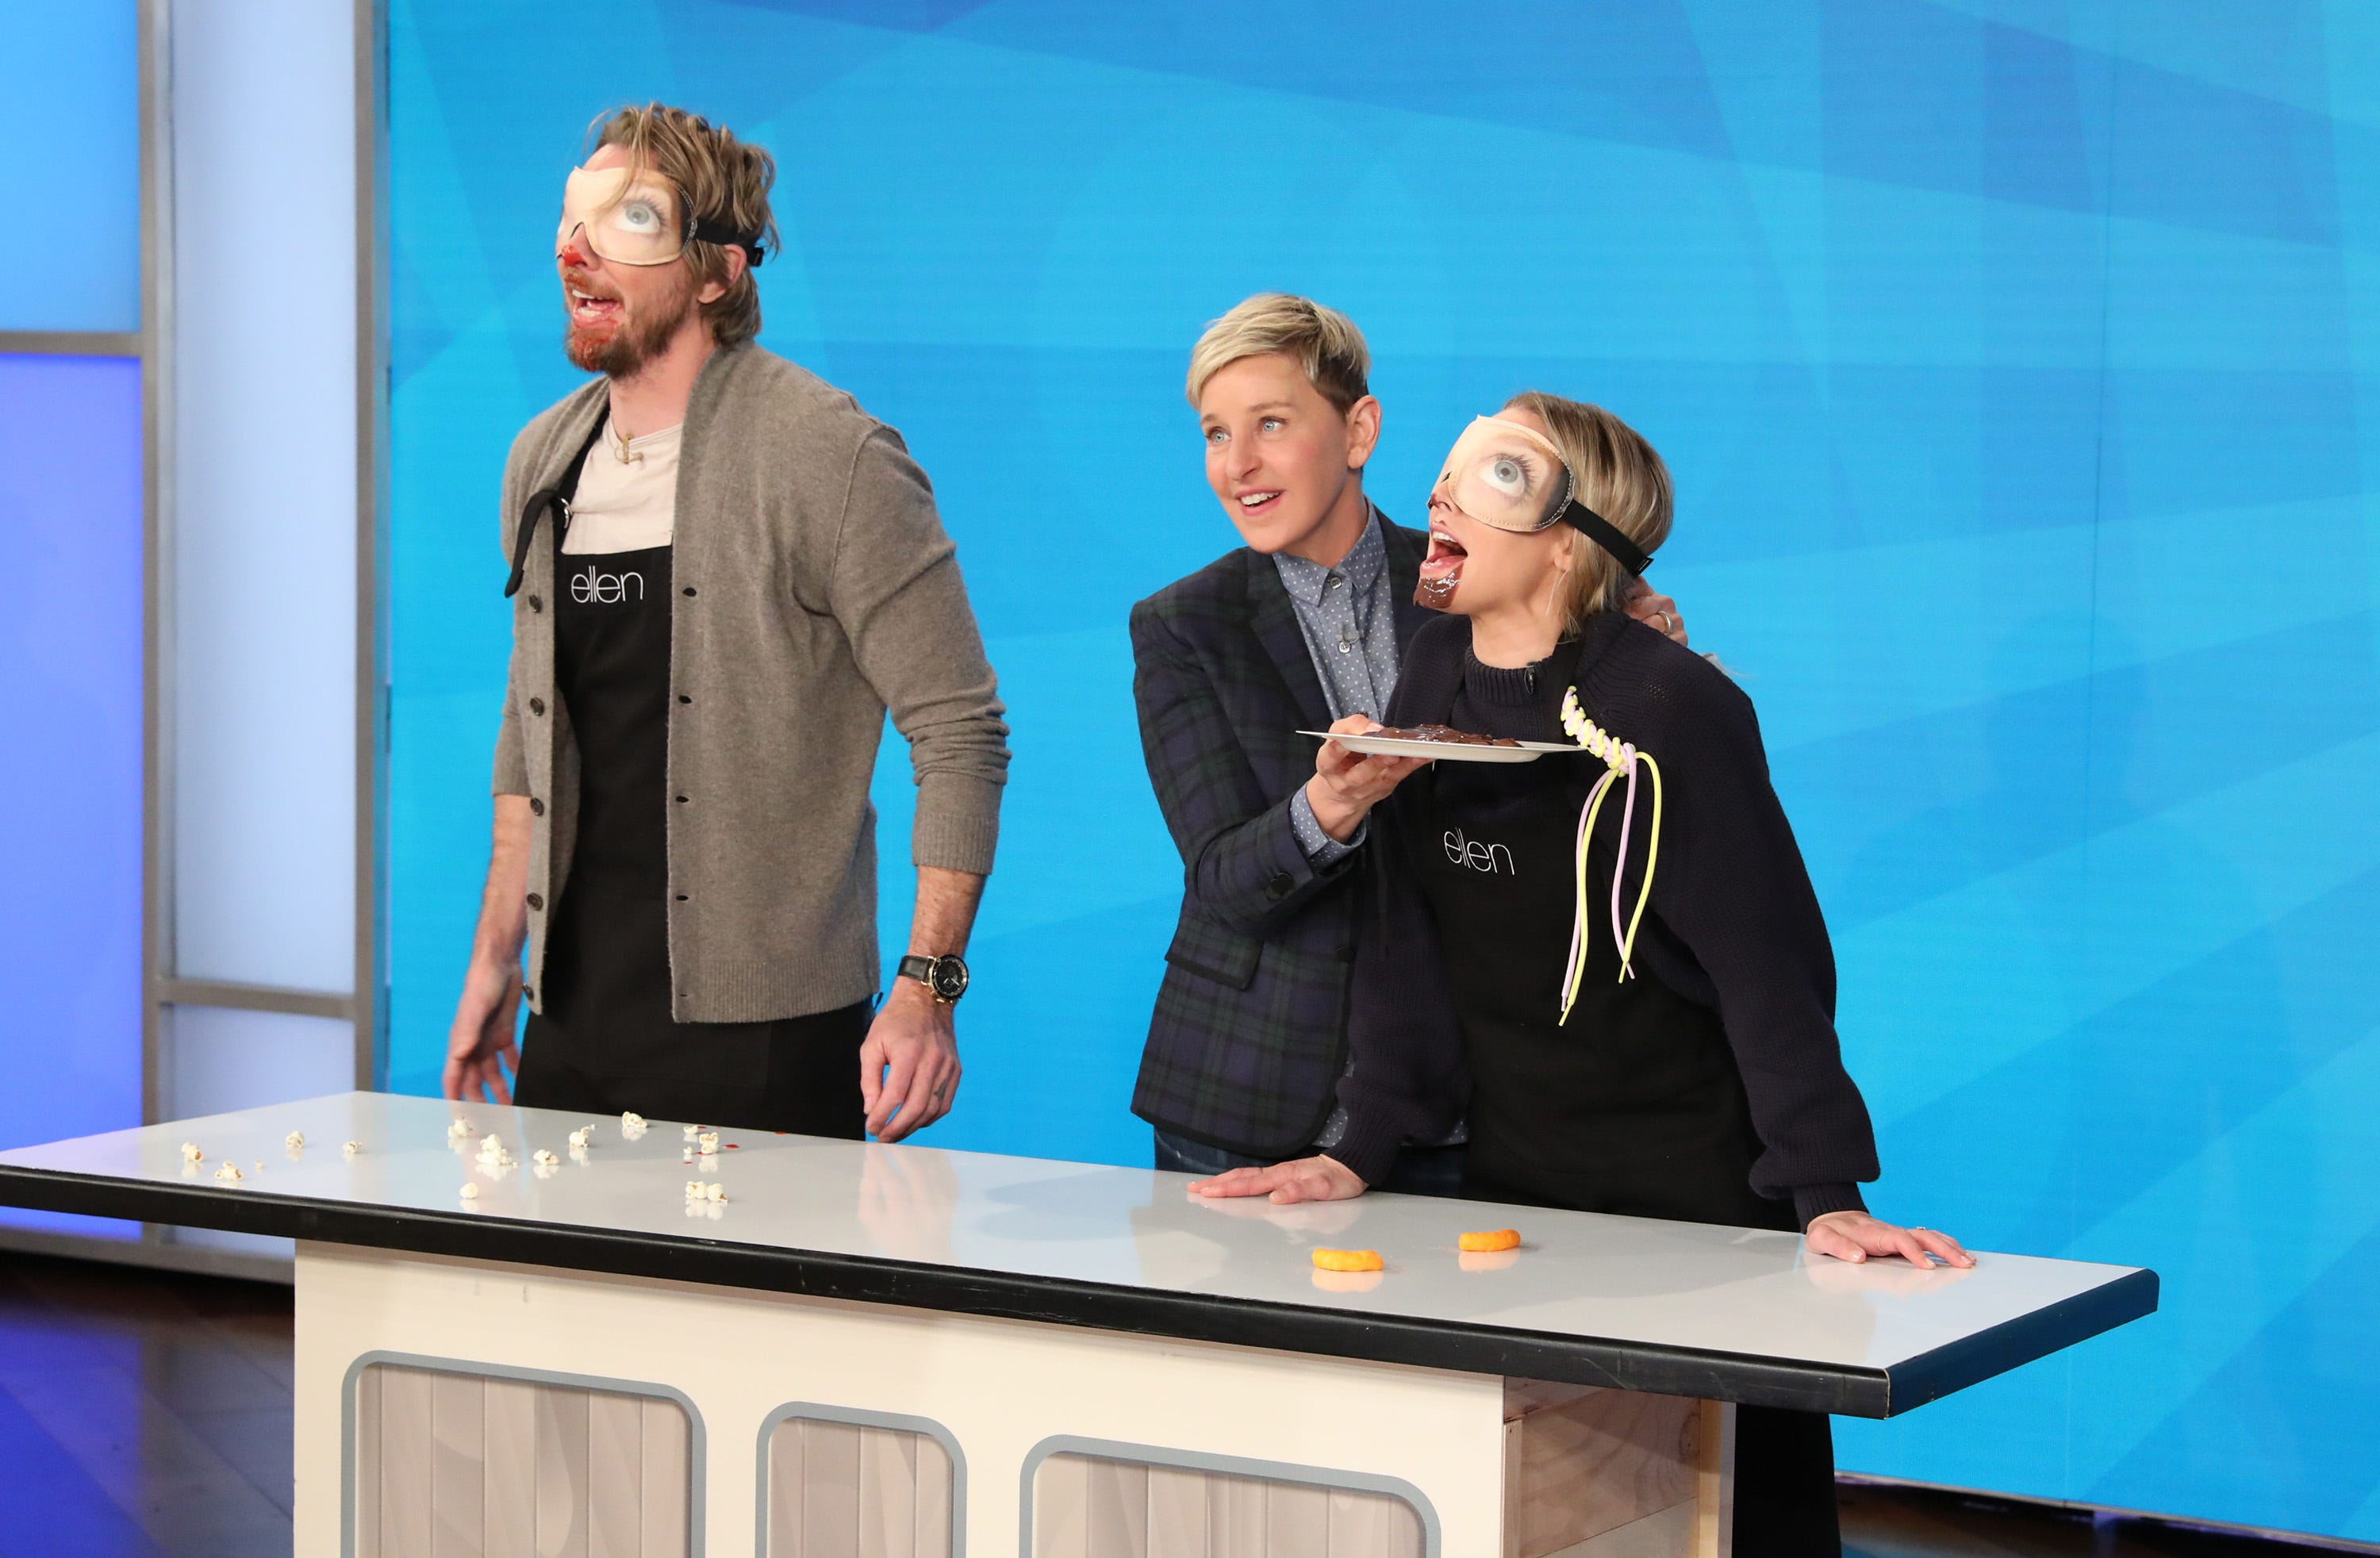 Celebrity couple Kristen Bell and Dax Shepard to host new game show  Family Game Fight